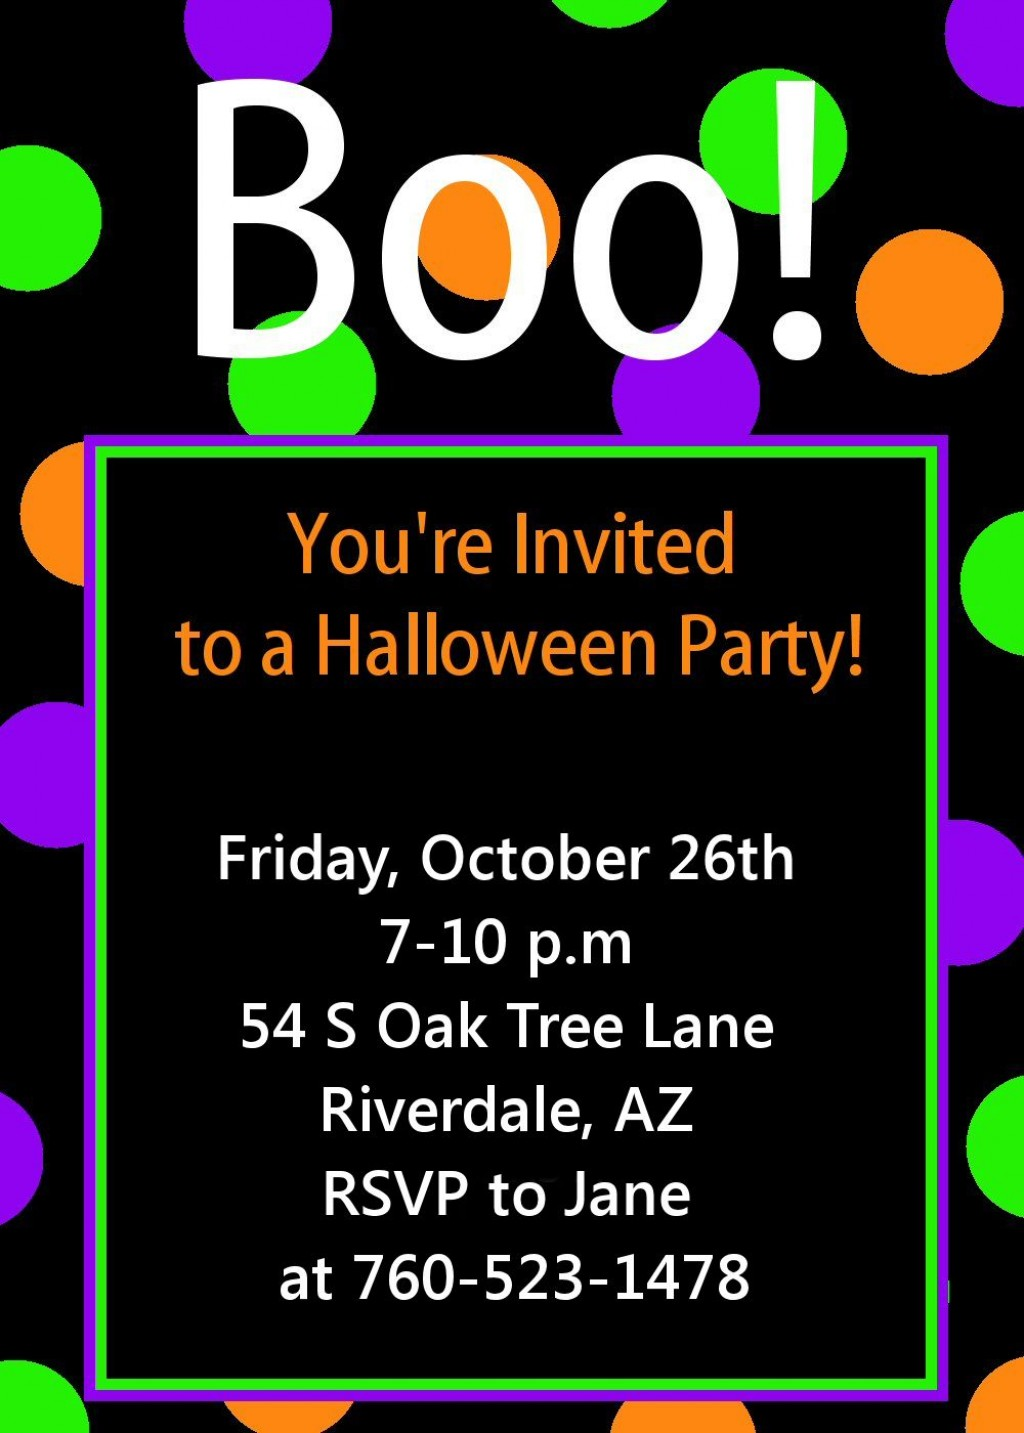 009 Awful Free Halloween Party Invitation Template Picture  Printable Birthday For Word DownloadLarge